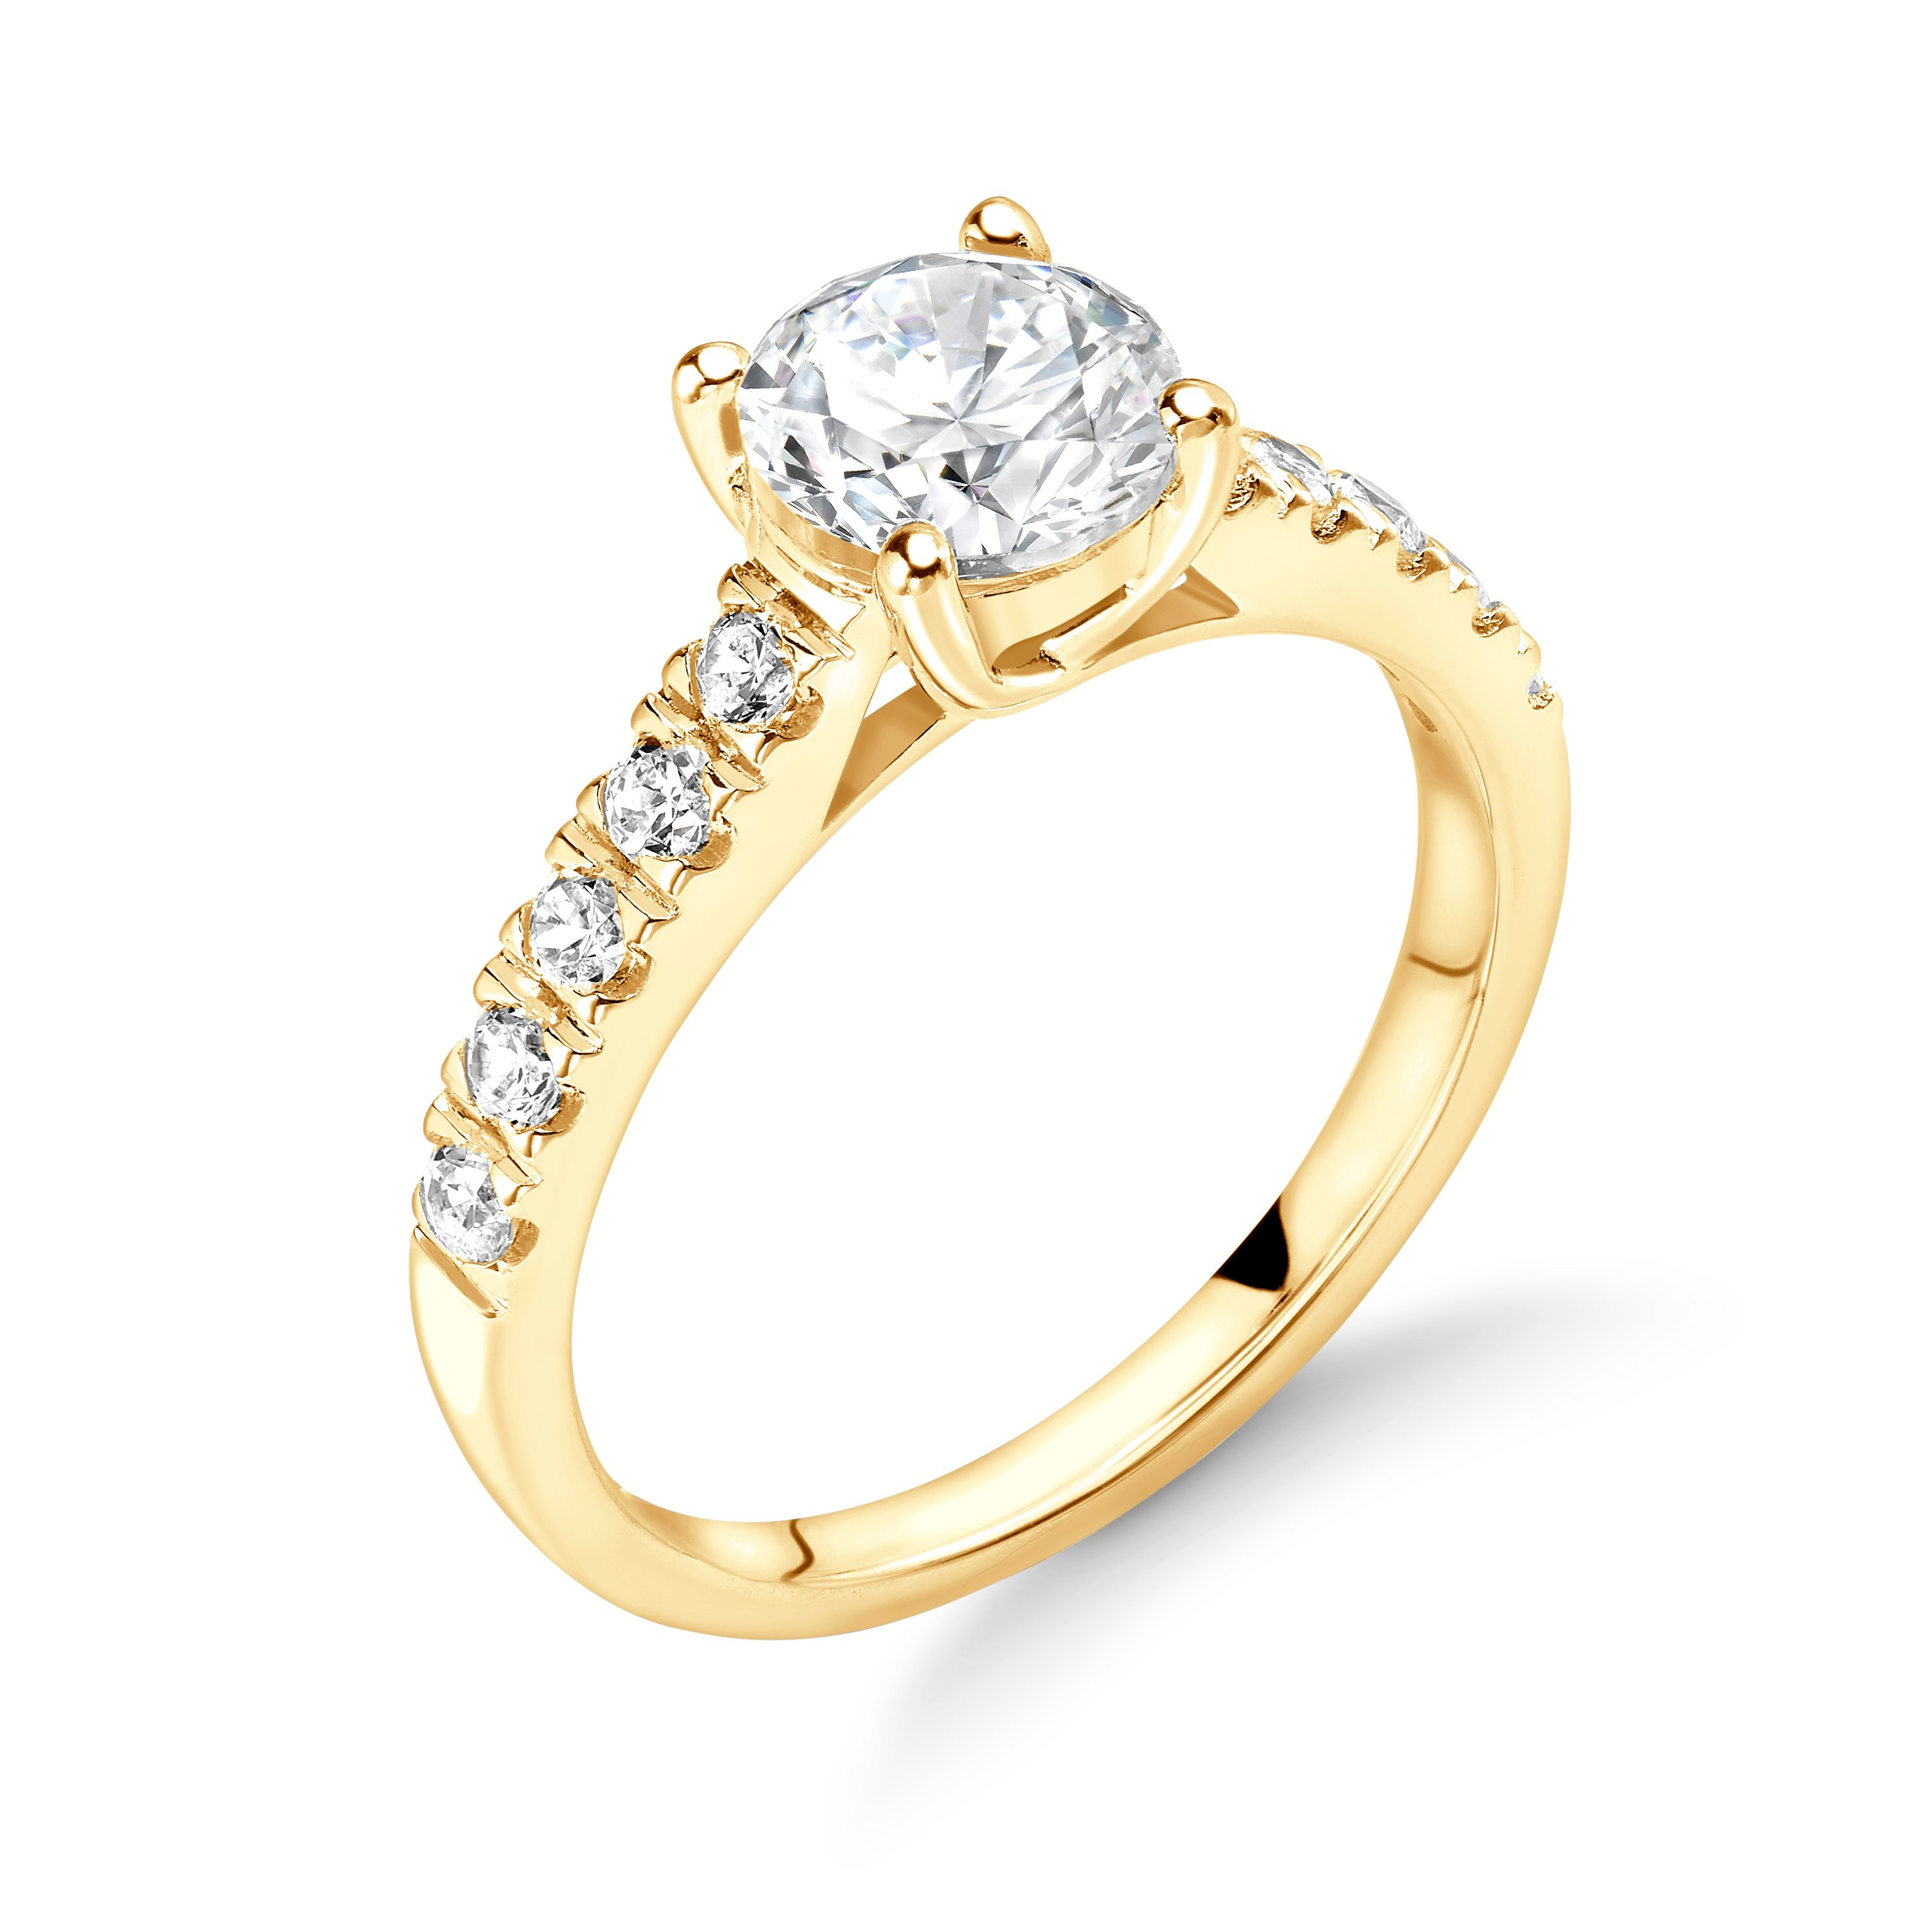 Claw Setting Round Diamond Engagement Rings in Yellow/White and Rose Gold